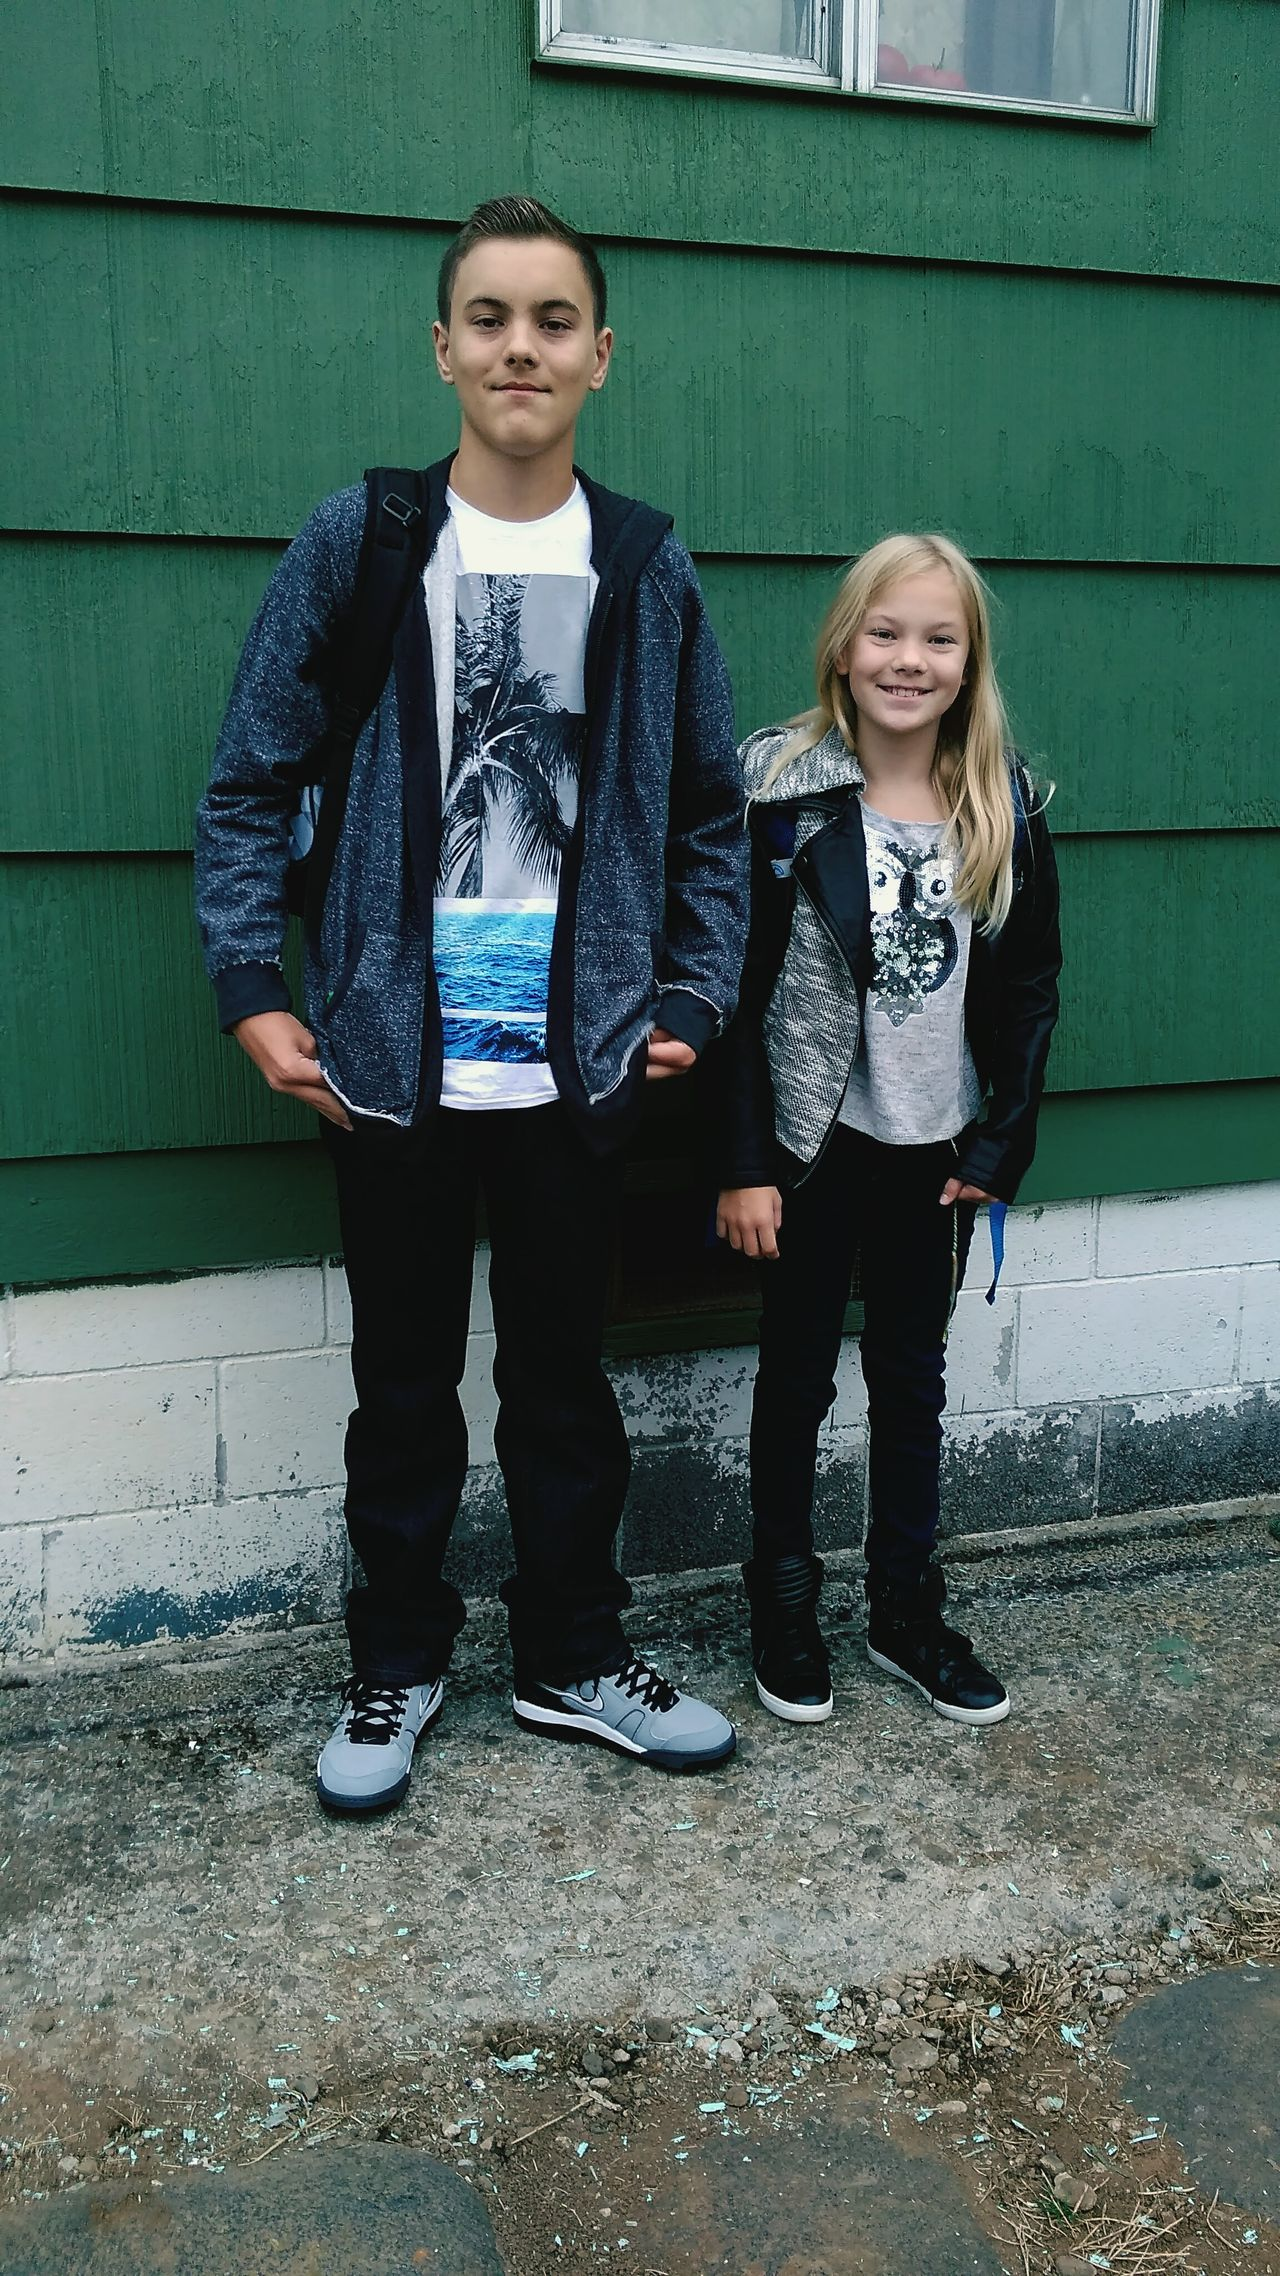 Brother And Sister First Day Of School Junior High School 7th Grade Elementary School 5th Grade